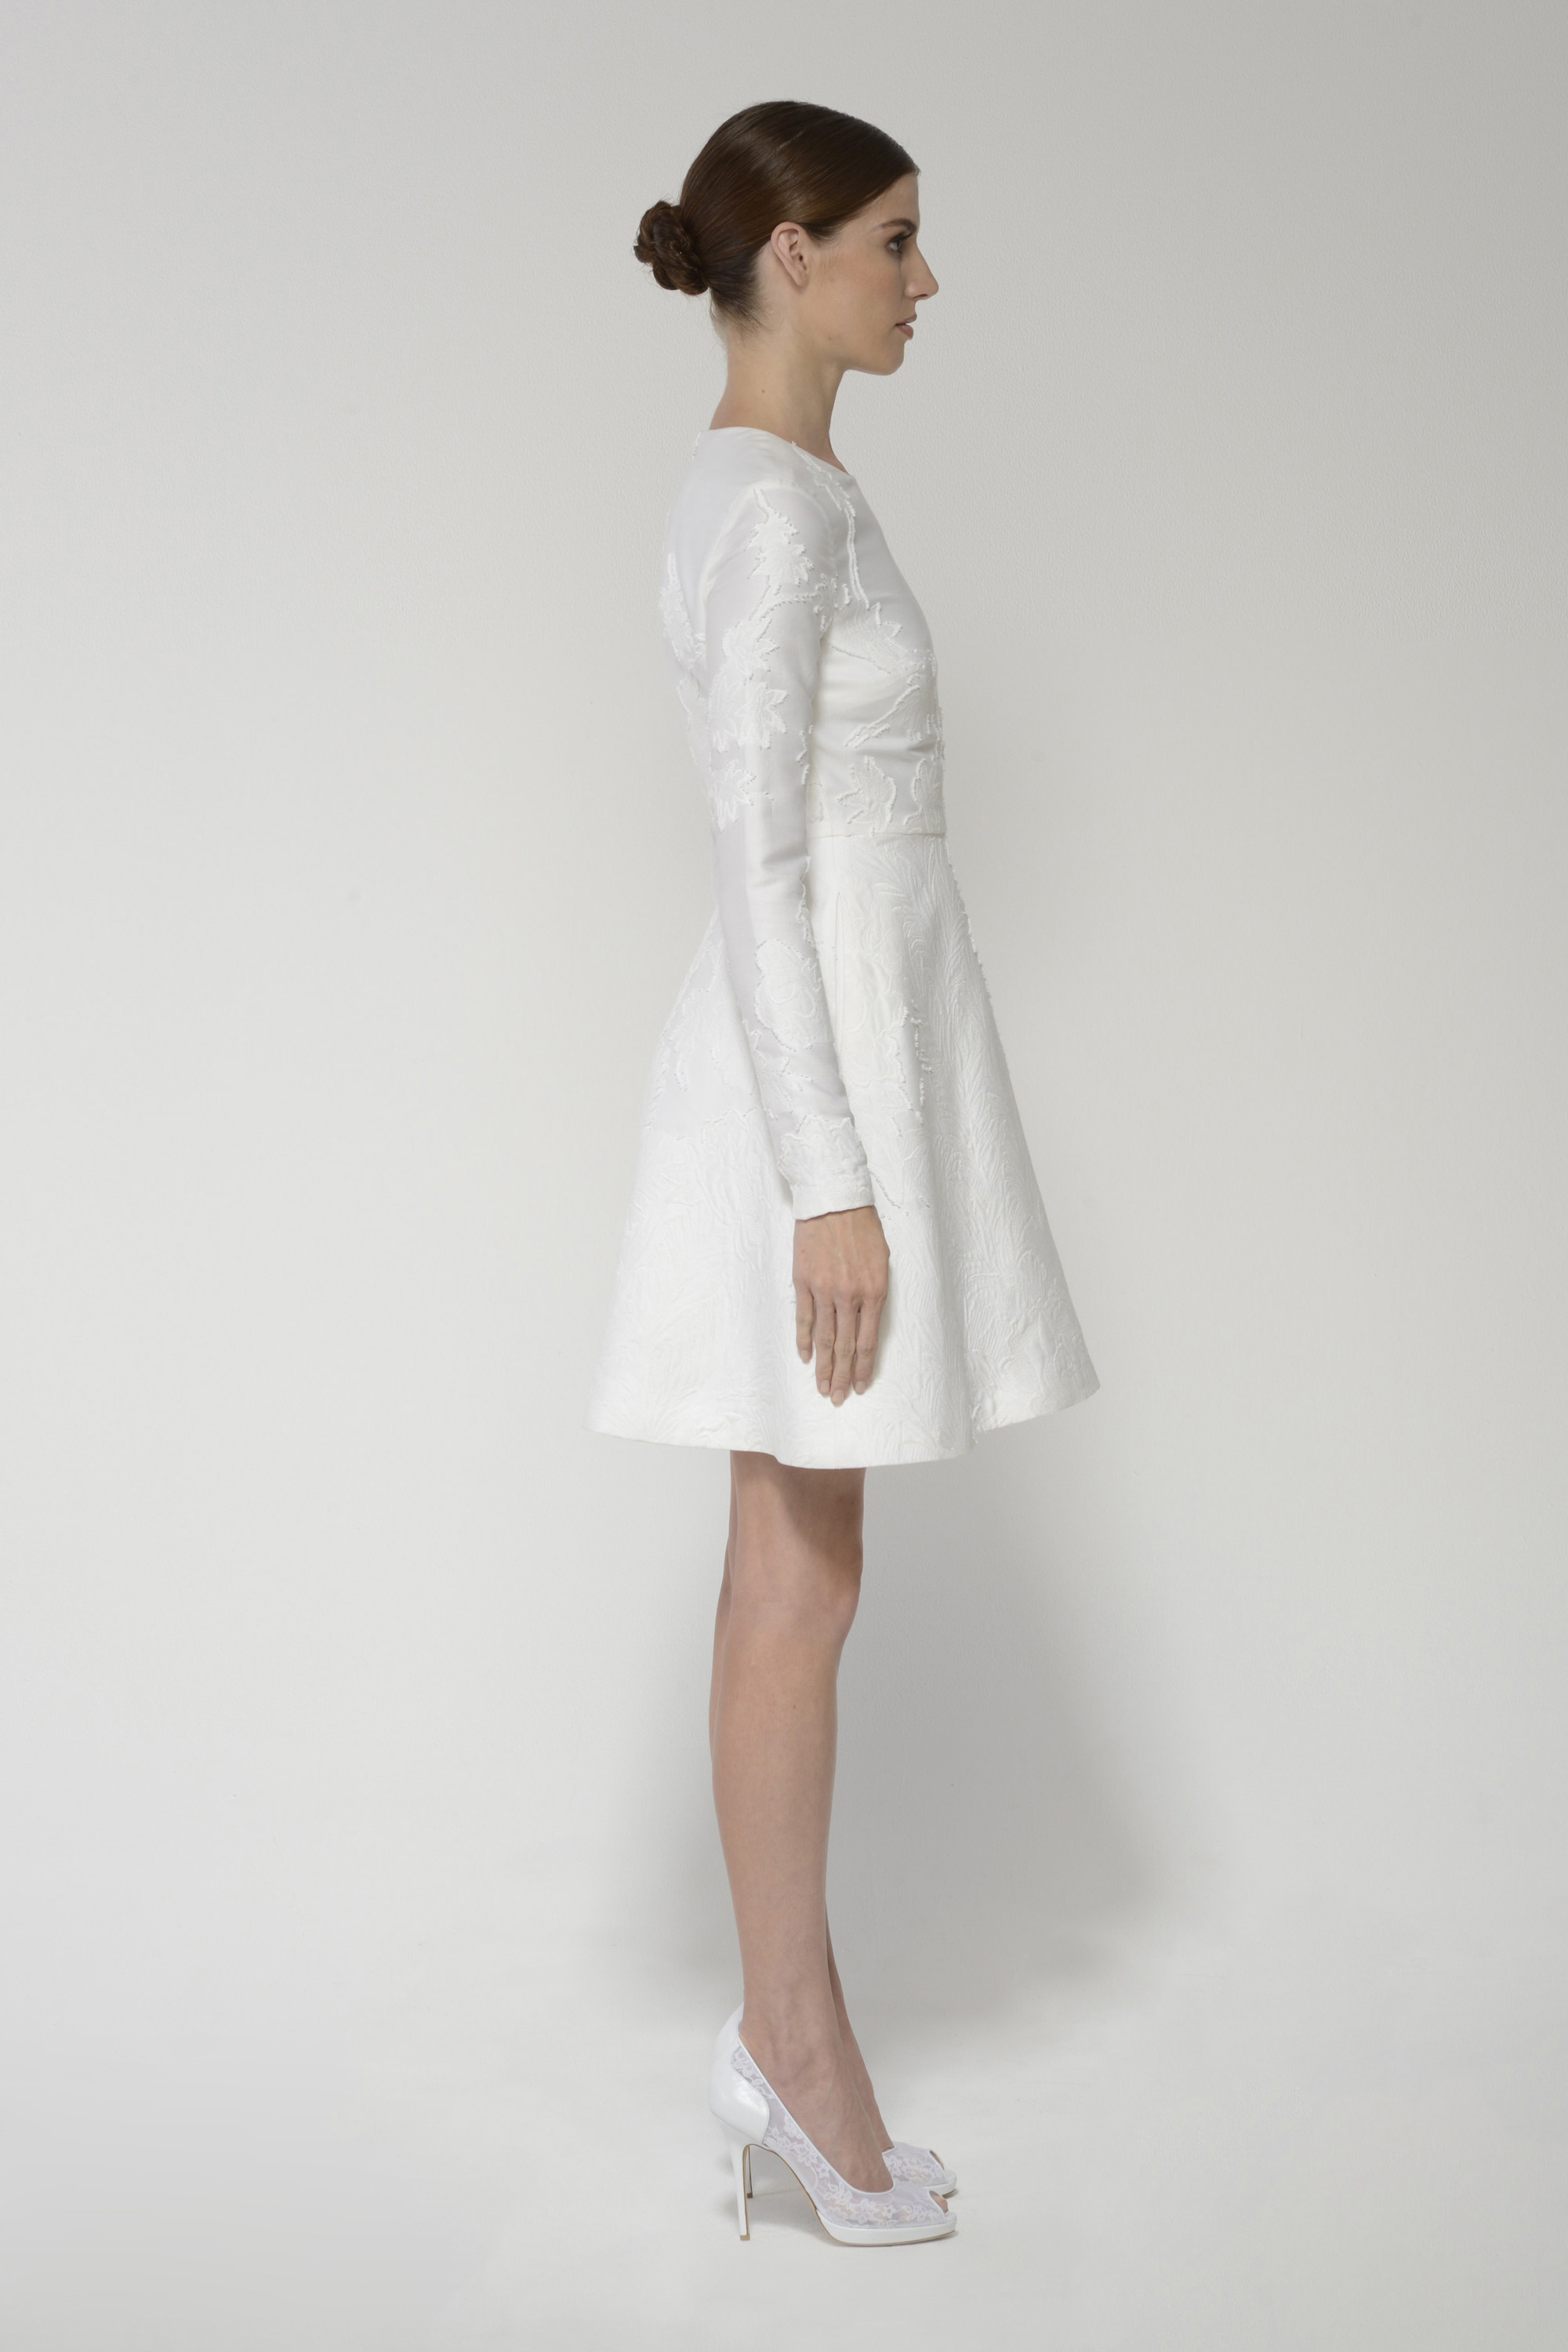 Minniedress silkwhite left 1